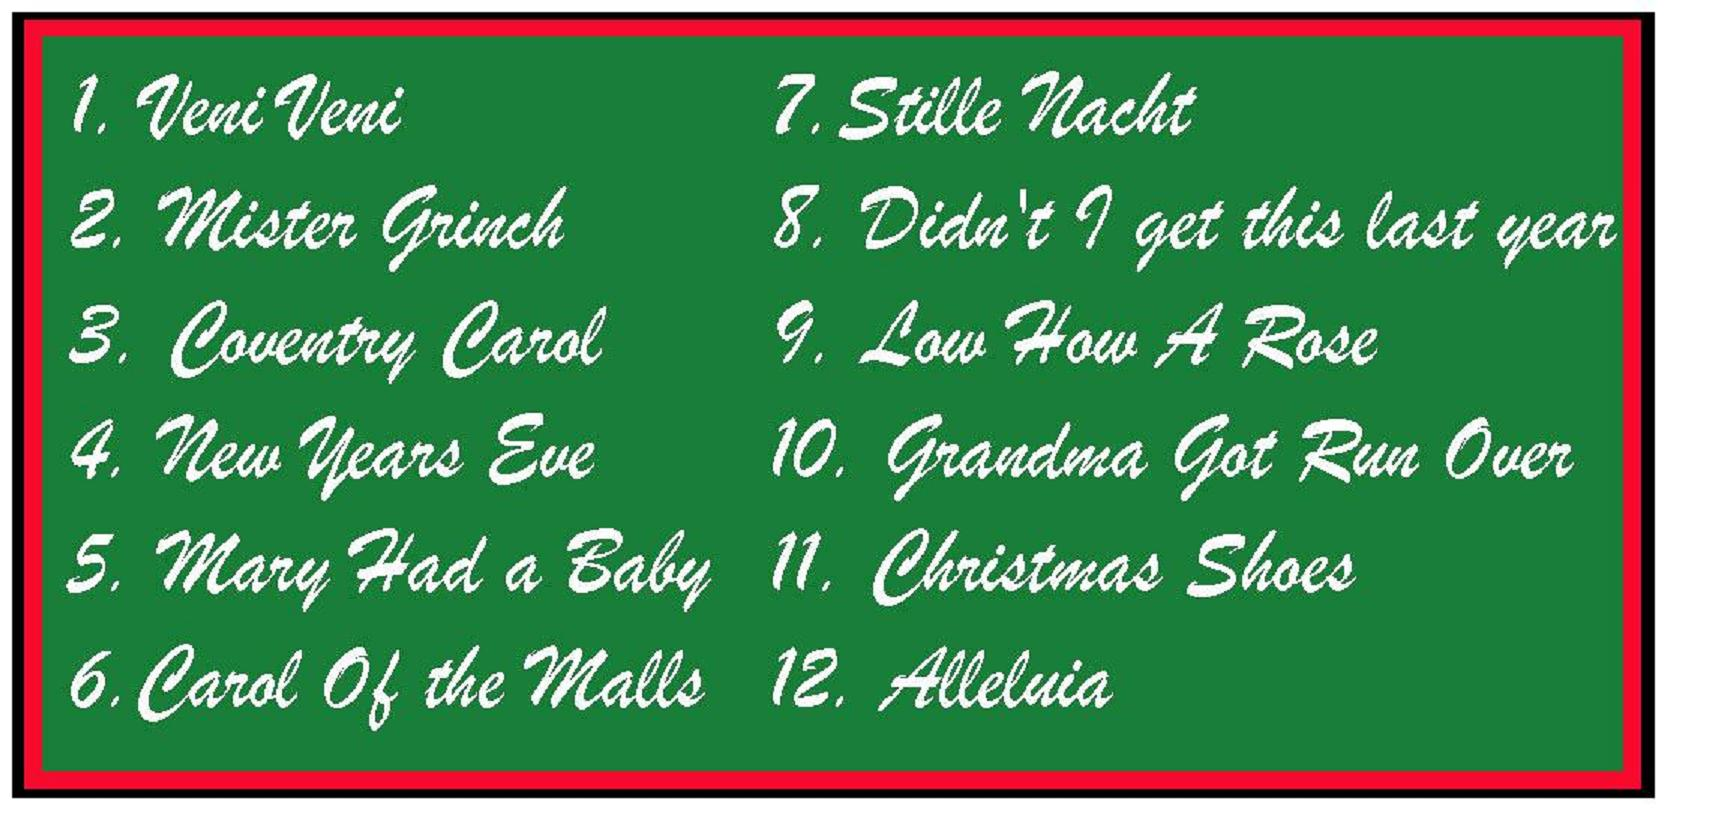 christmas songs list - Classic Christmas Songs List